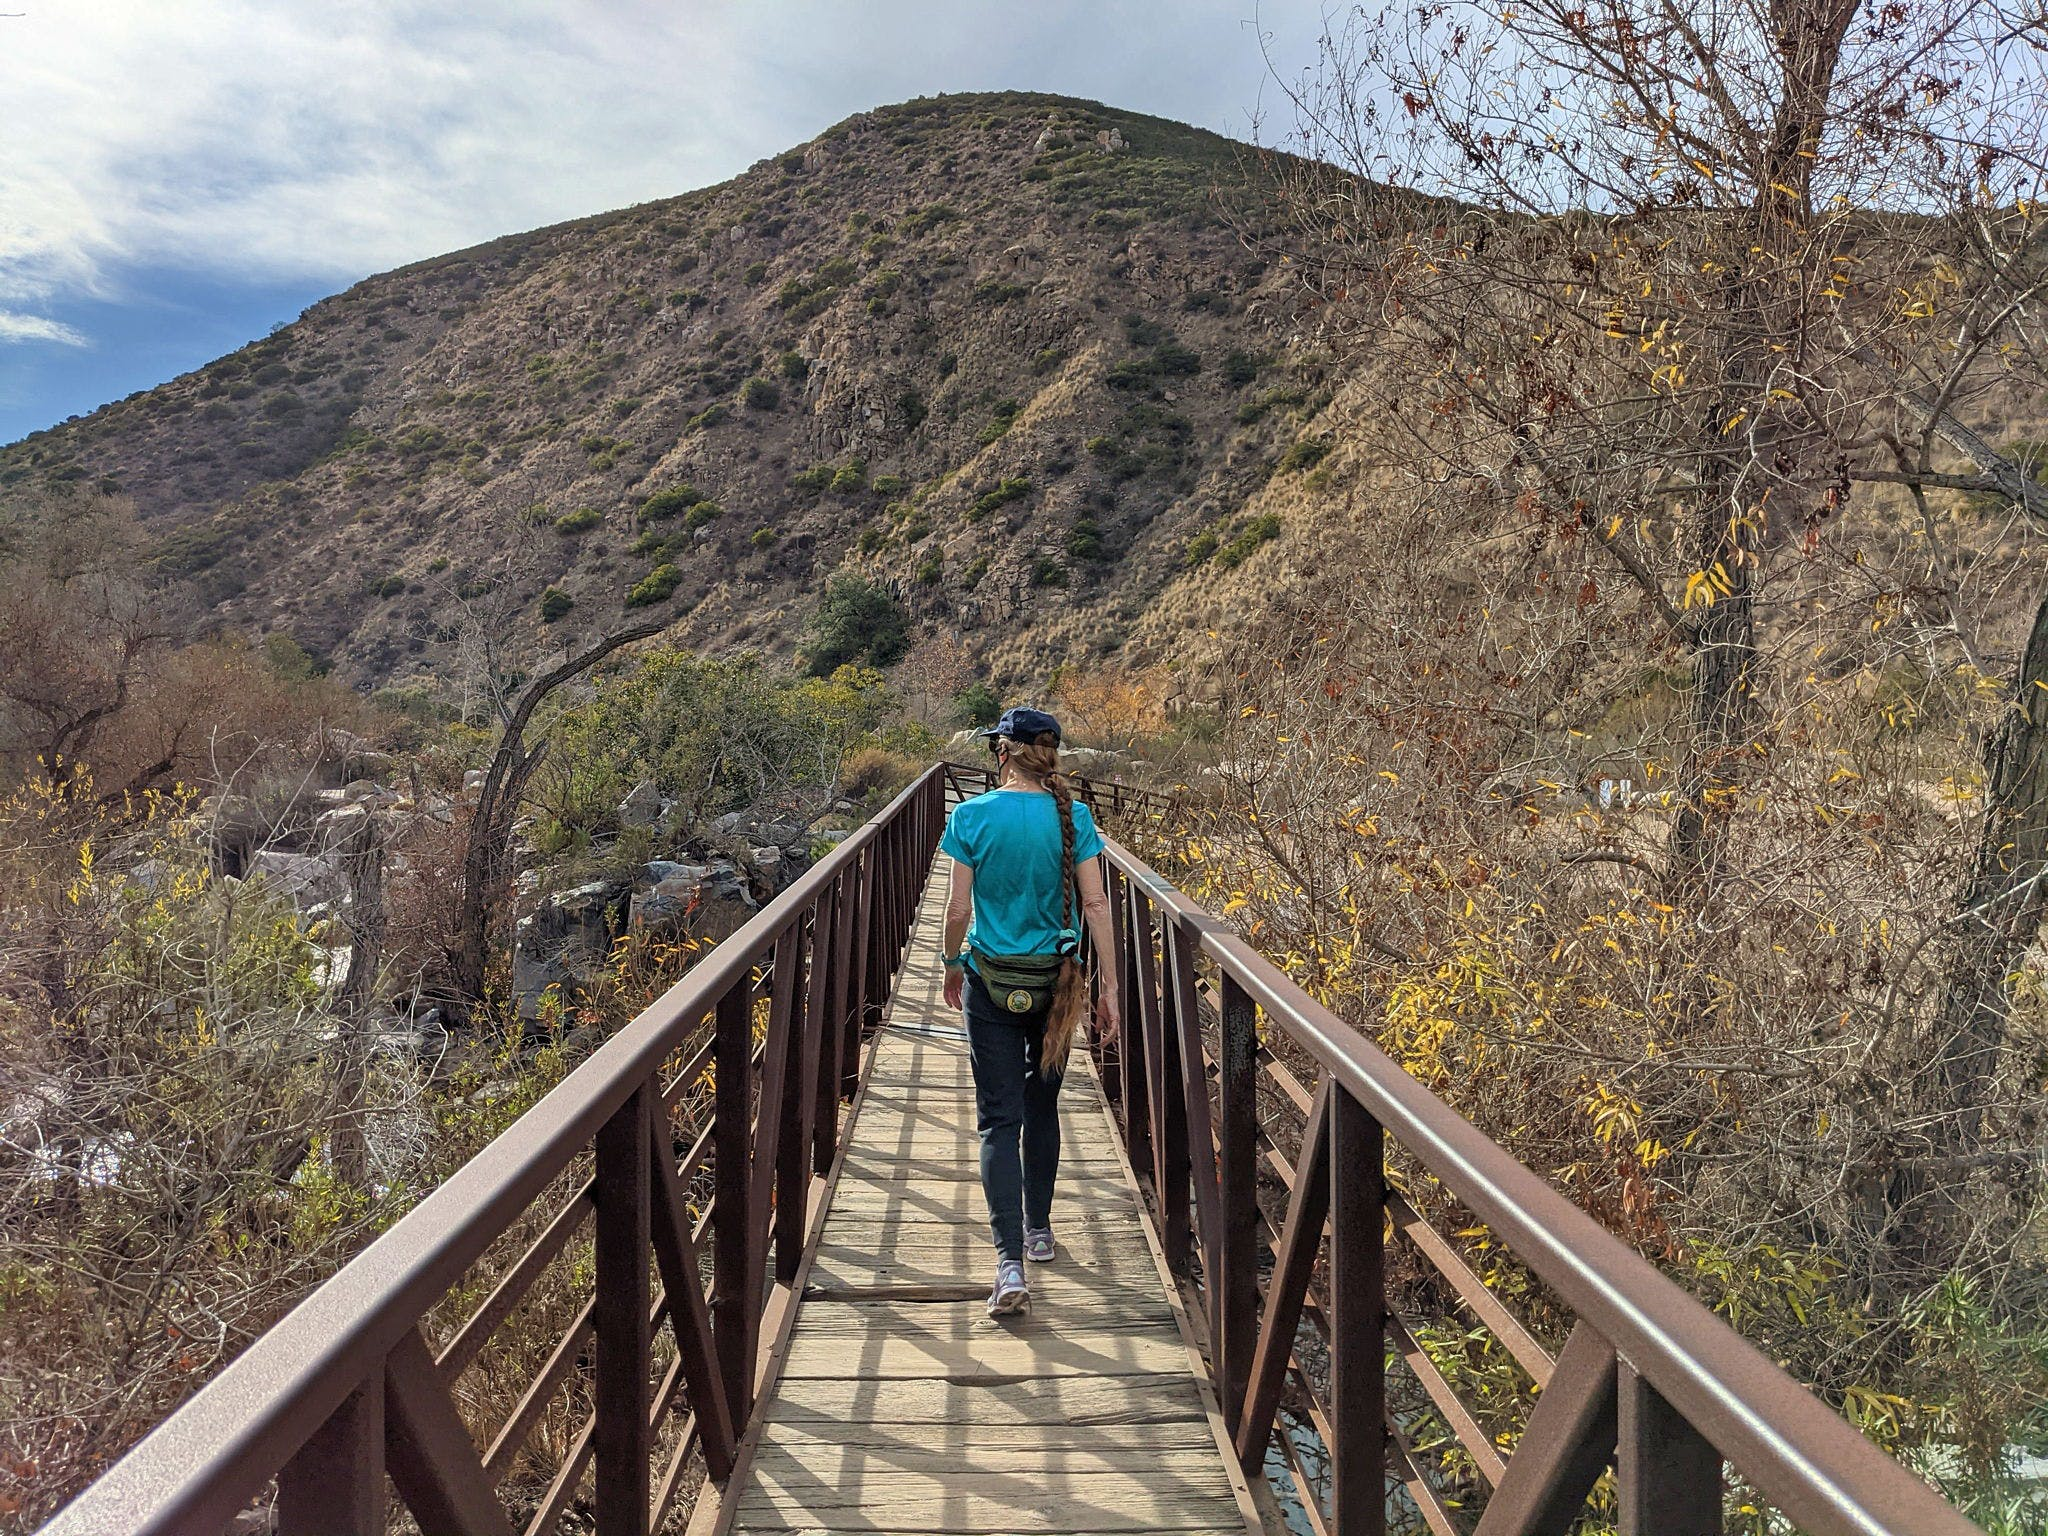 Woman walking over bridge at Mission Trails Regional Park in San Diego